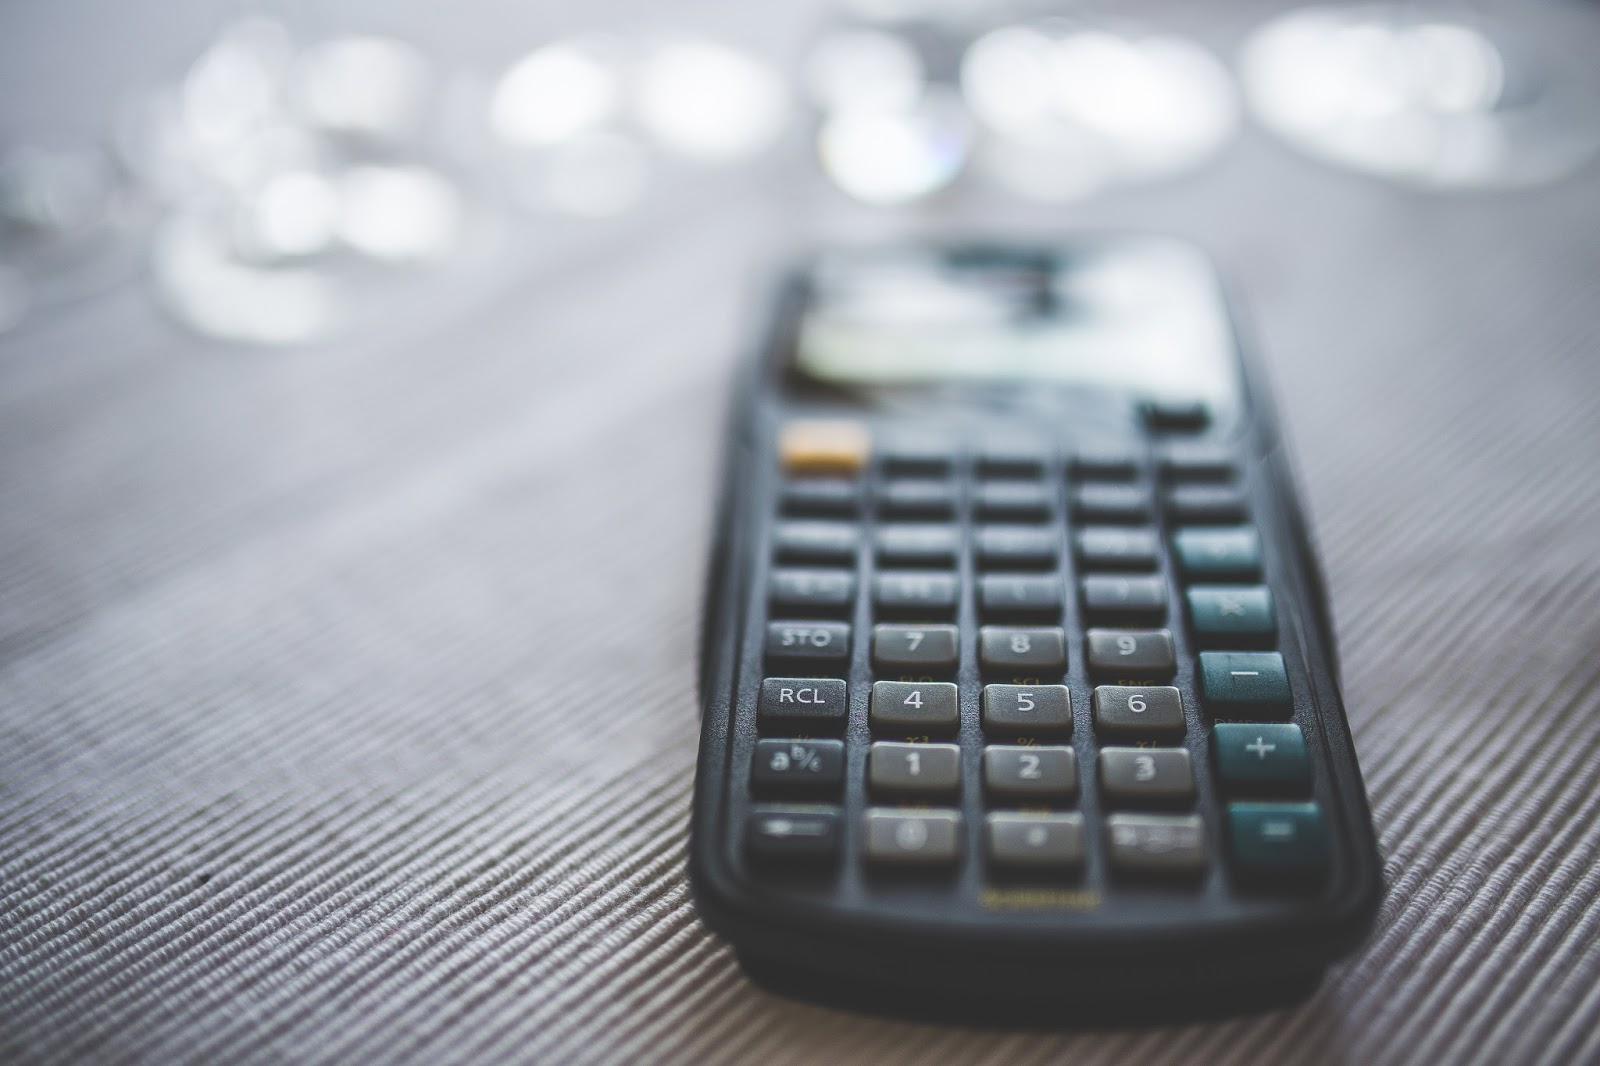 Calculator on a table with coins blurred in the distance